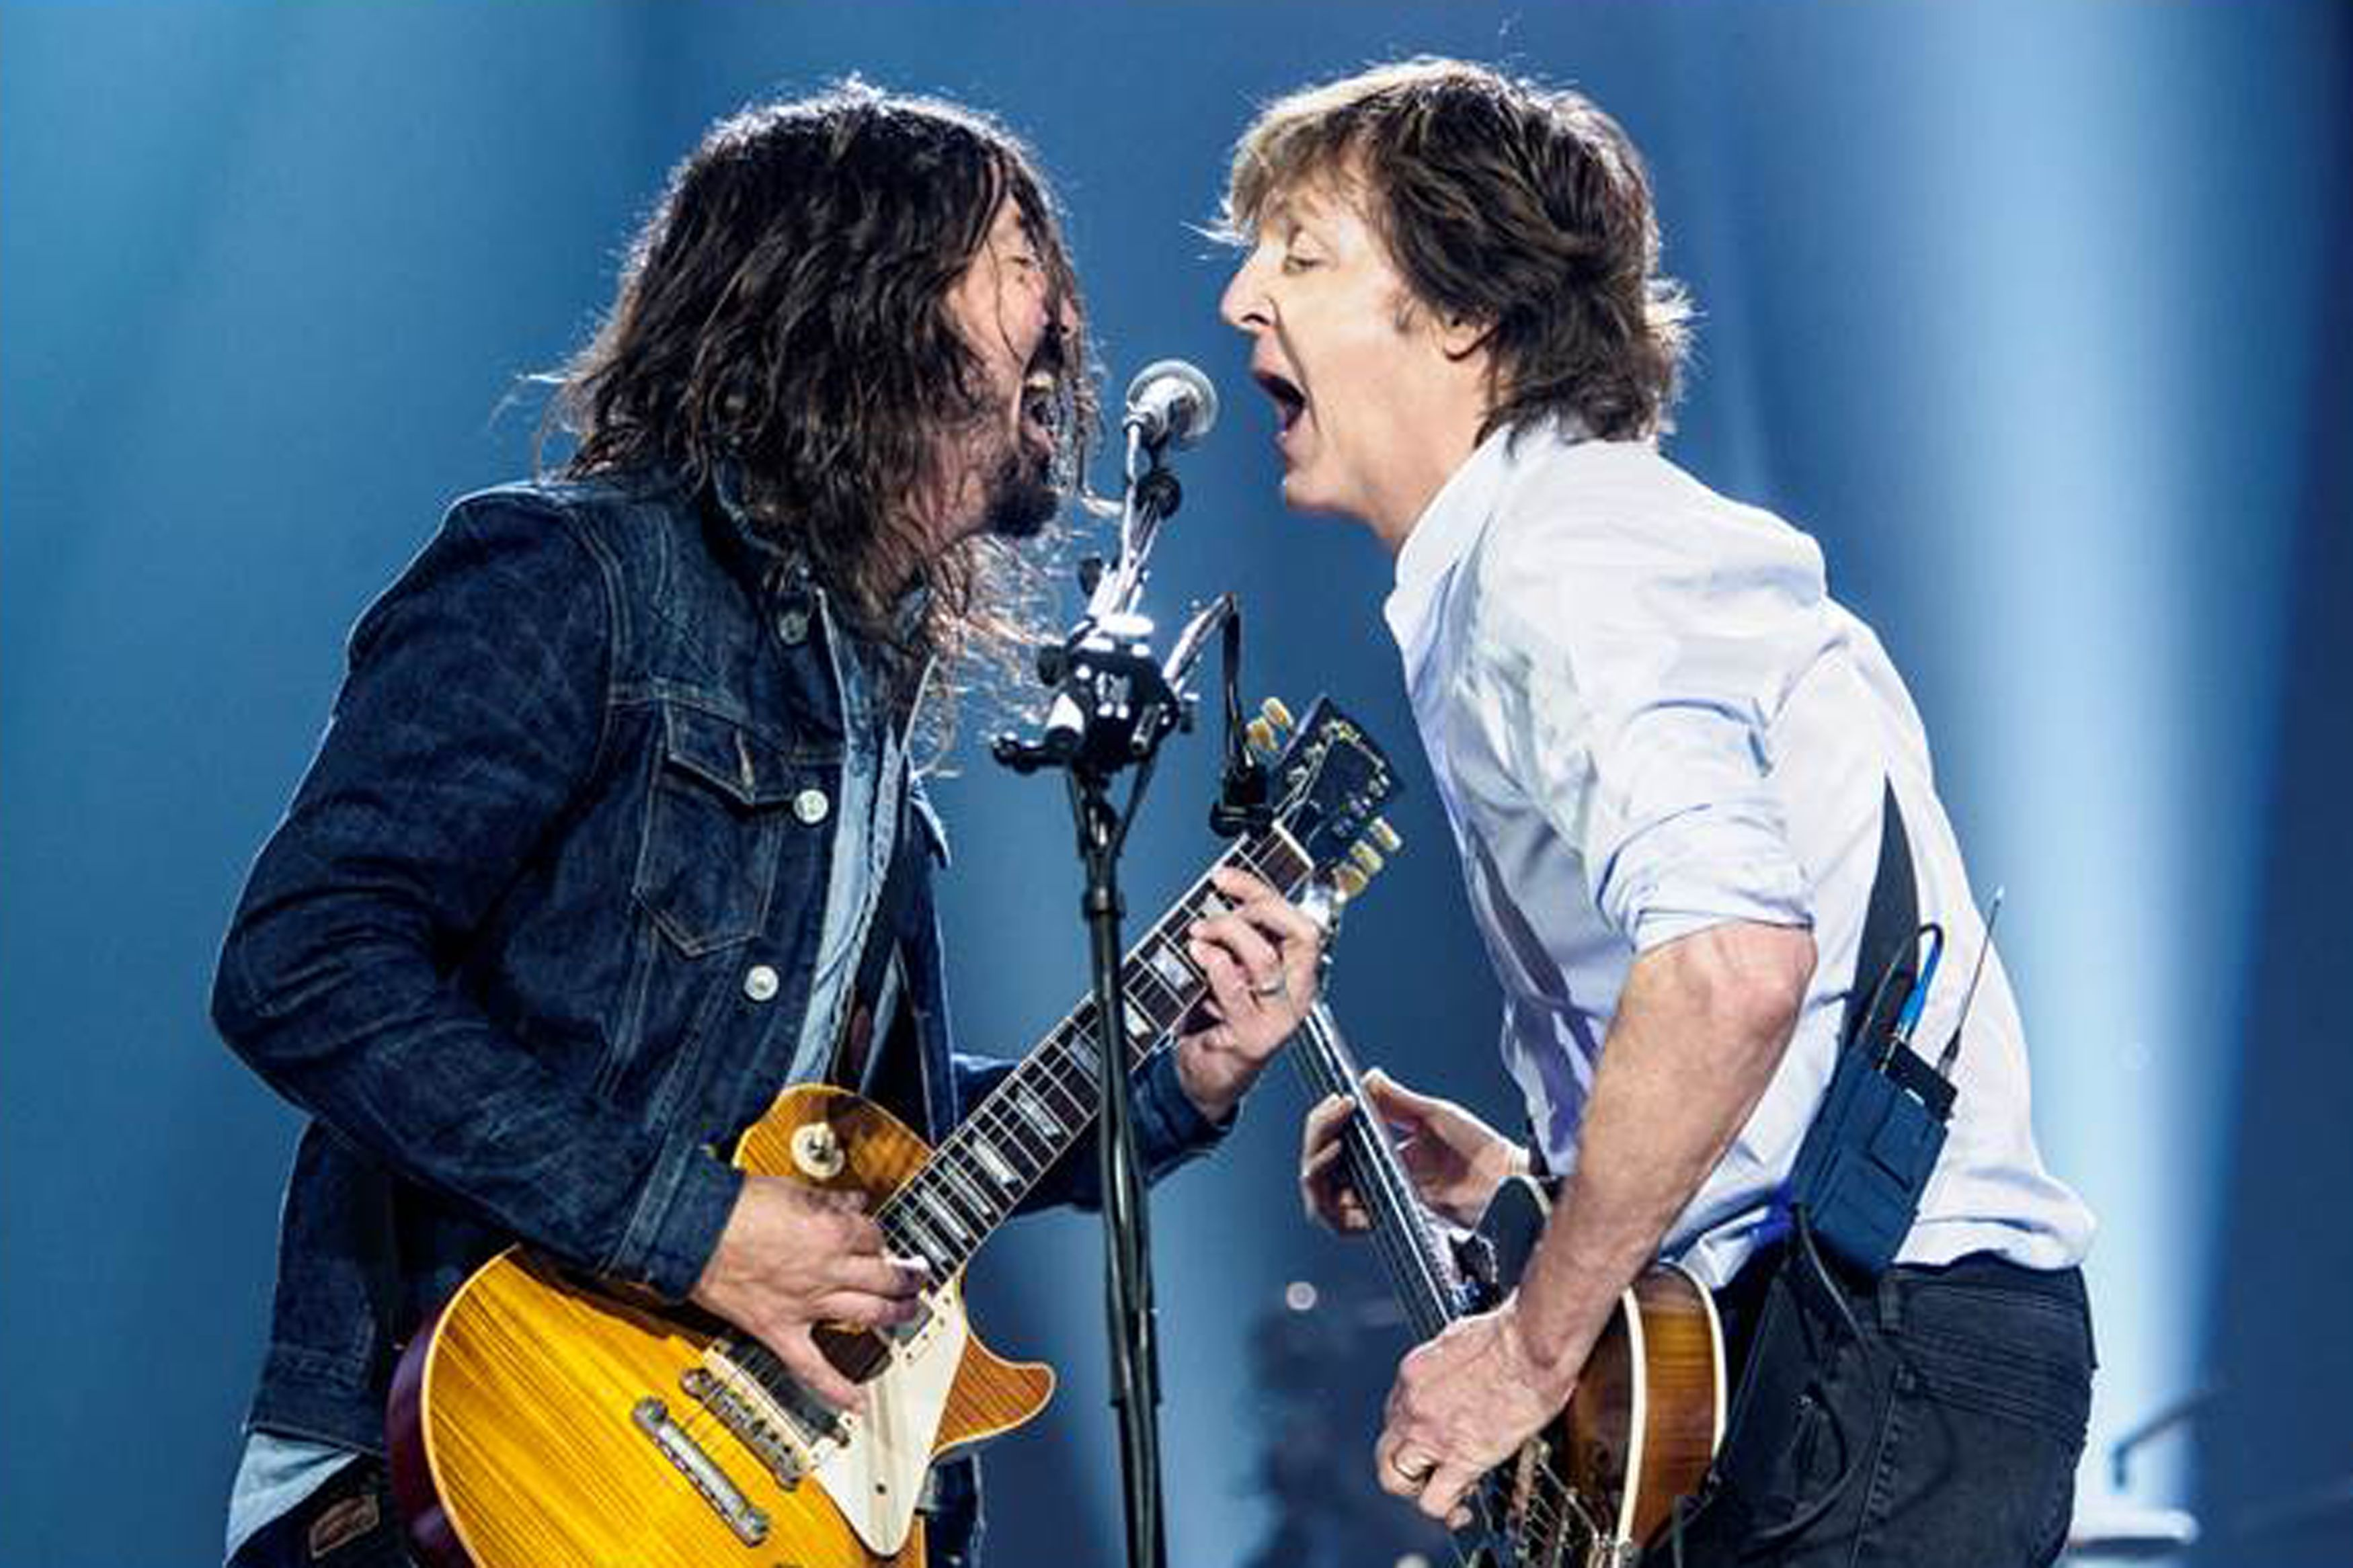 Dave Grohl joined Paul McCartney to play The Beatles song I Saw Her Standing There and it was amazing